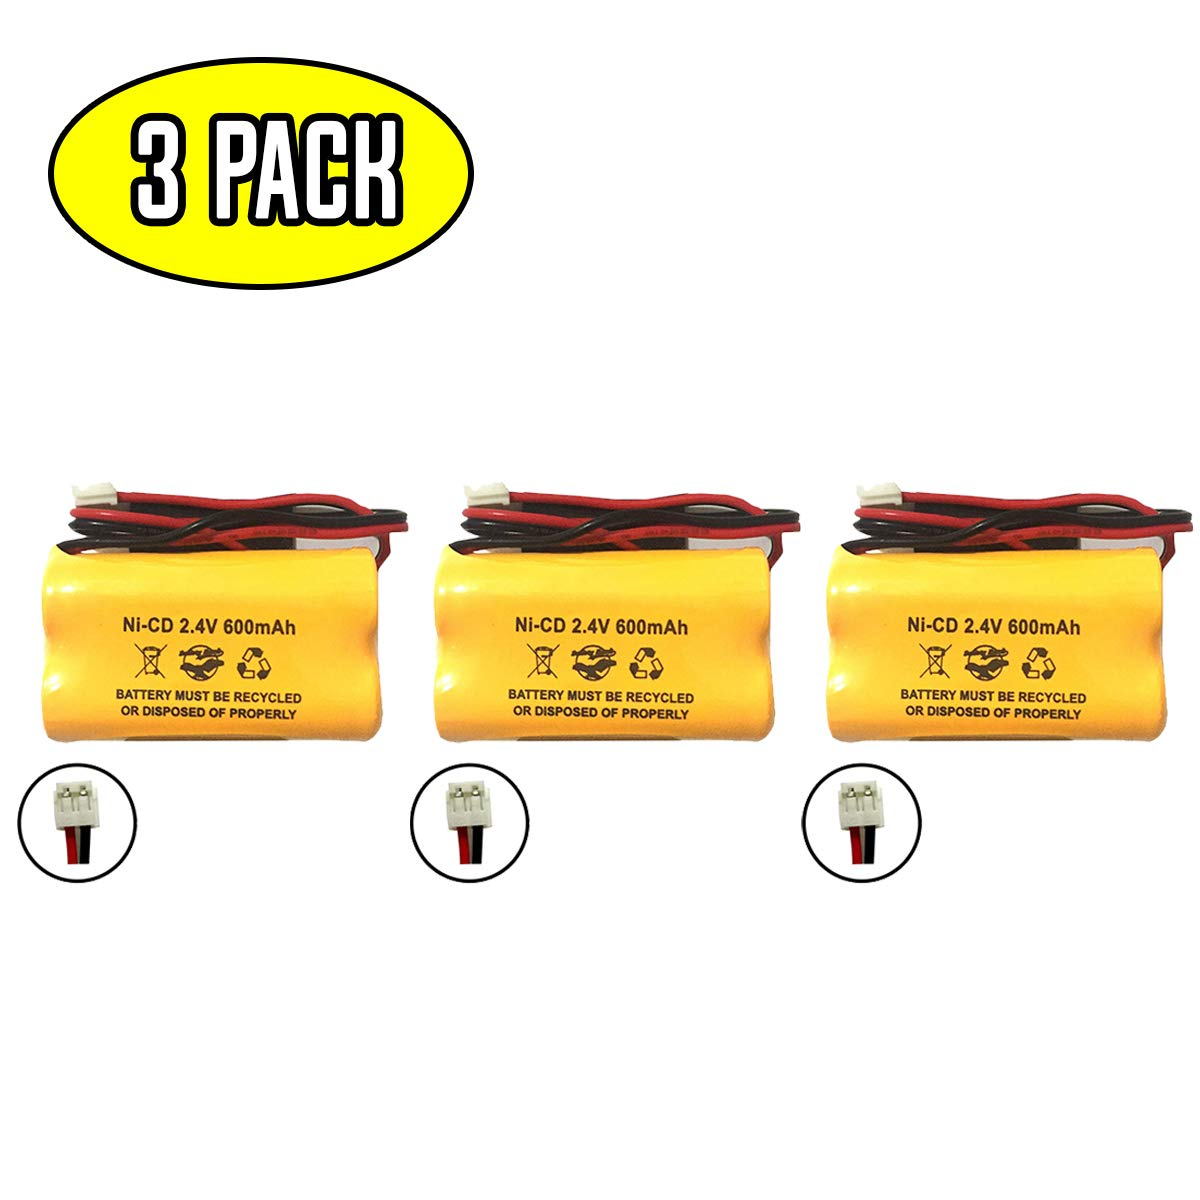 (3 Pack) BP2-A Dual-LITE Ni-CD 2.4v 600mAh CSXWREB3 HUBBEL Battery BP2A BP2-0A 0BP2-0A 2.4v 600mAh Ni-CD Battery Pack Replacement for Exit Sign Emergency Light